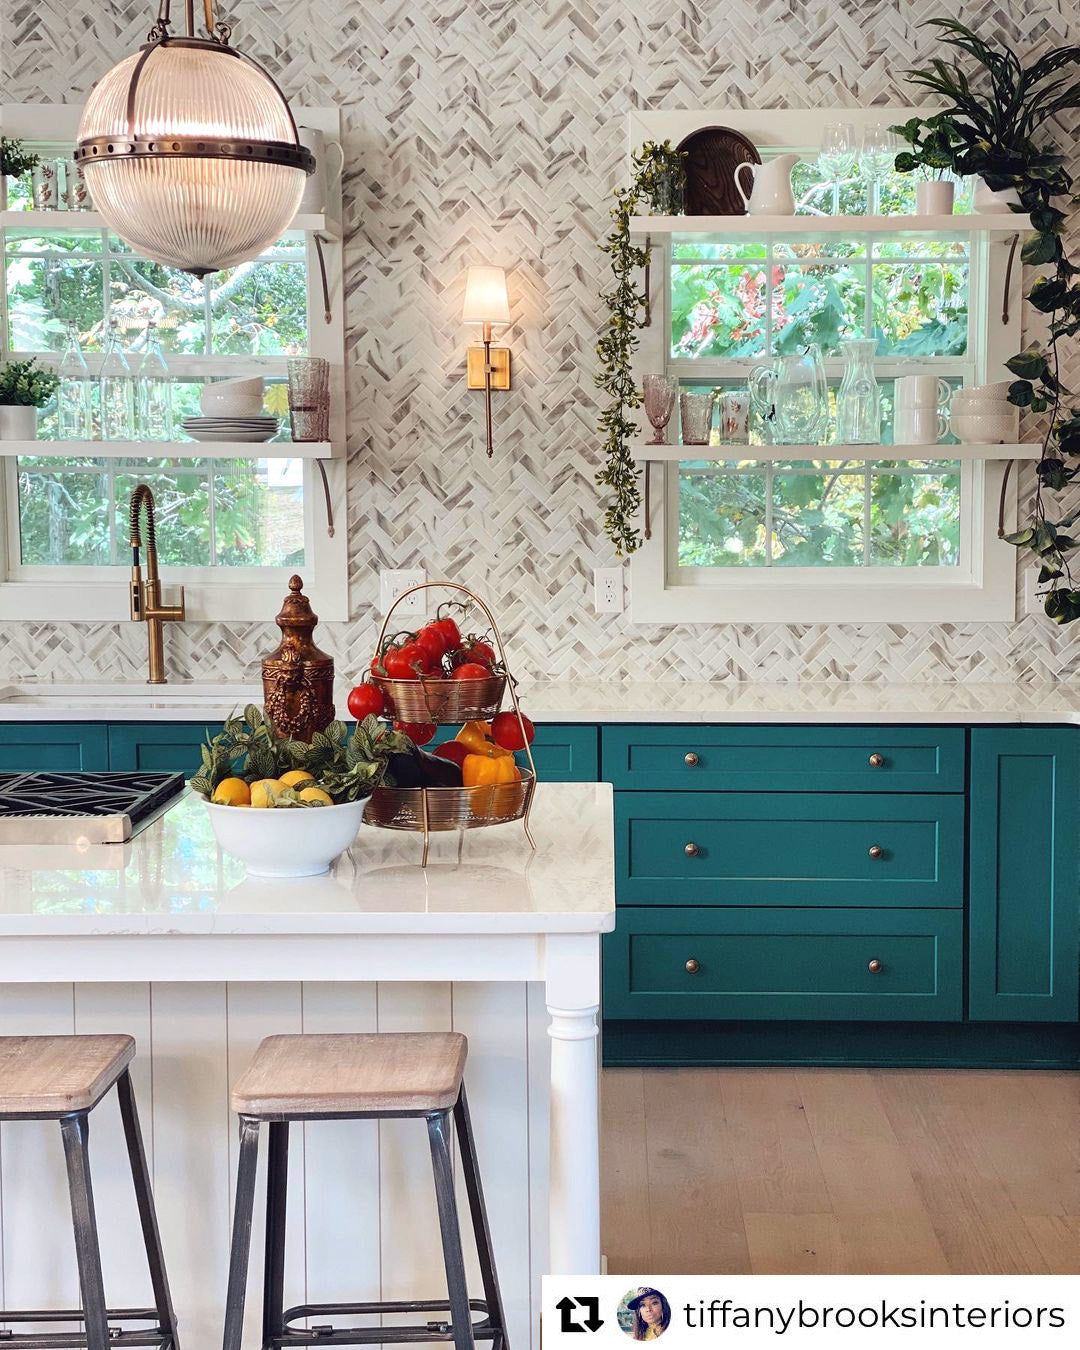 HGTV's Rock the Block with Tiffany Brooks and David Bromstad with Recycled Glass Tile in a Calacatta Gold marble pattern and bold green cabinet paint for a stunning kitchen remodeling idea!